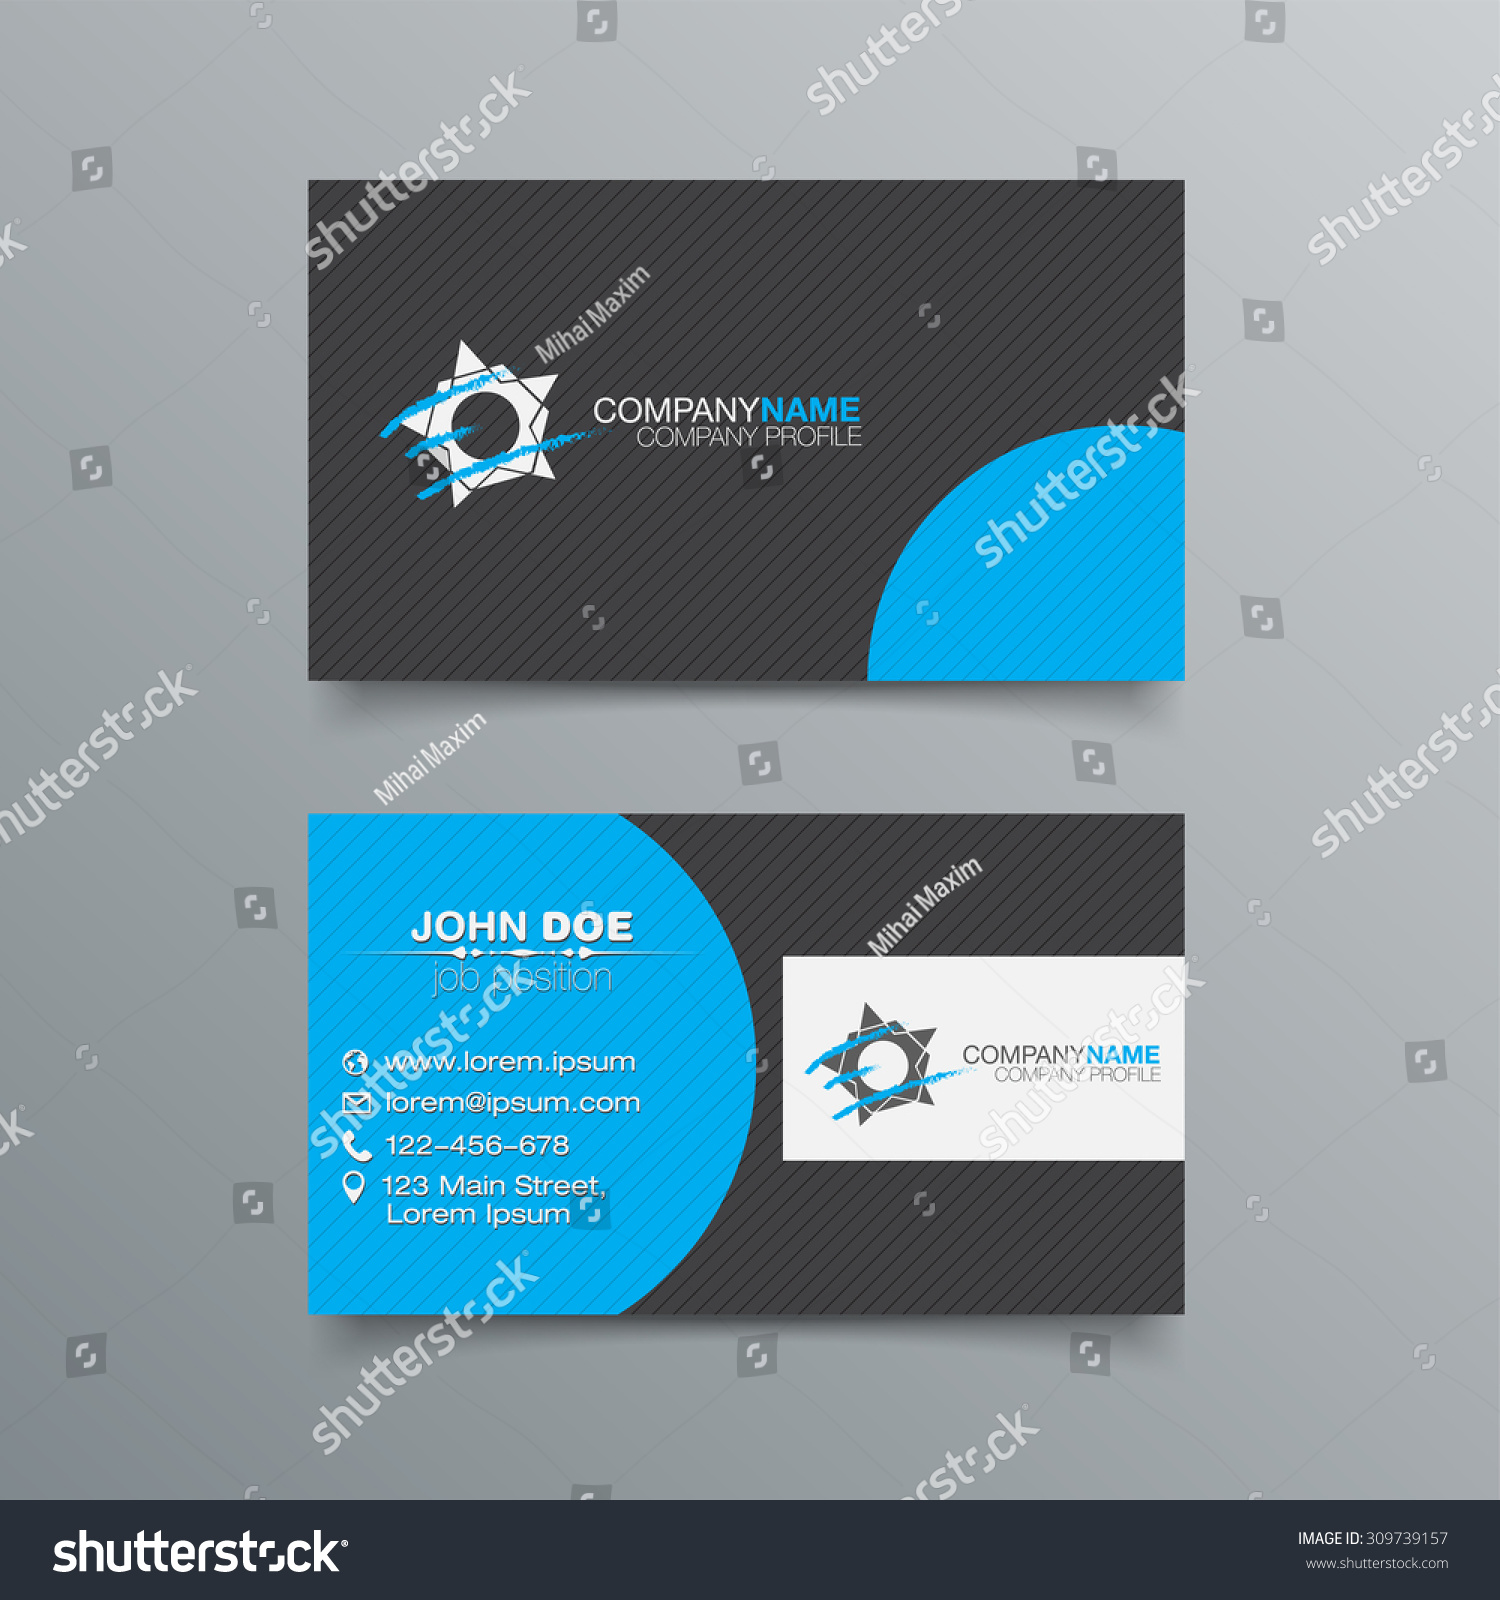 Business card background templates images templates example free business card background images free business cards visiting card background design for rental notice template business magicingreecefo Choice Image